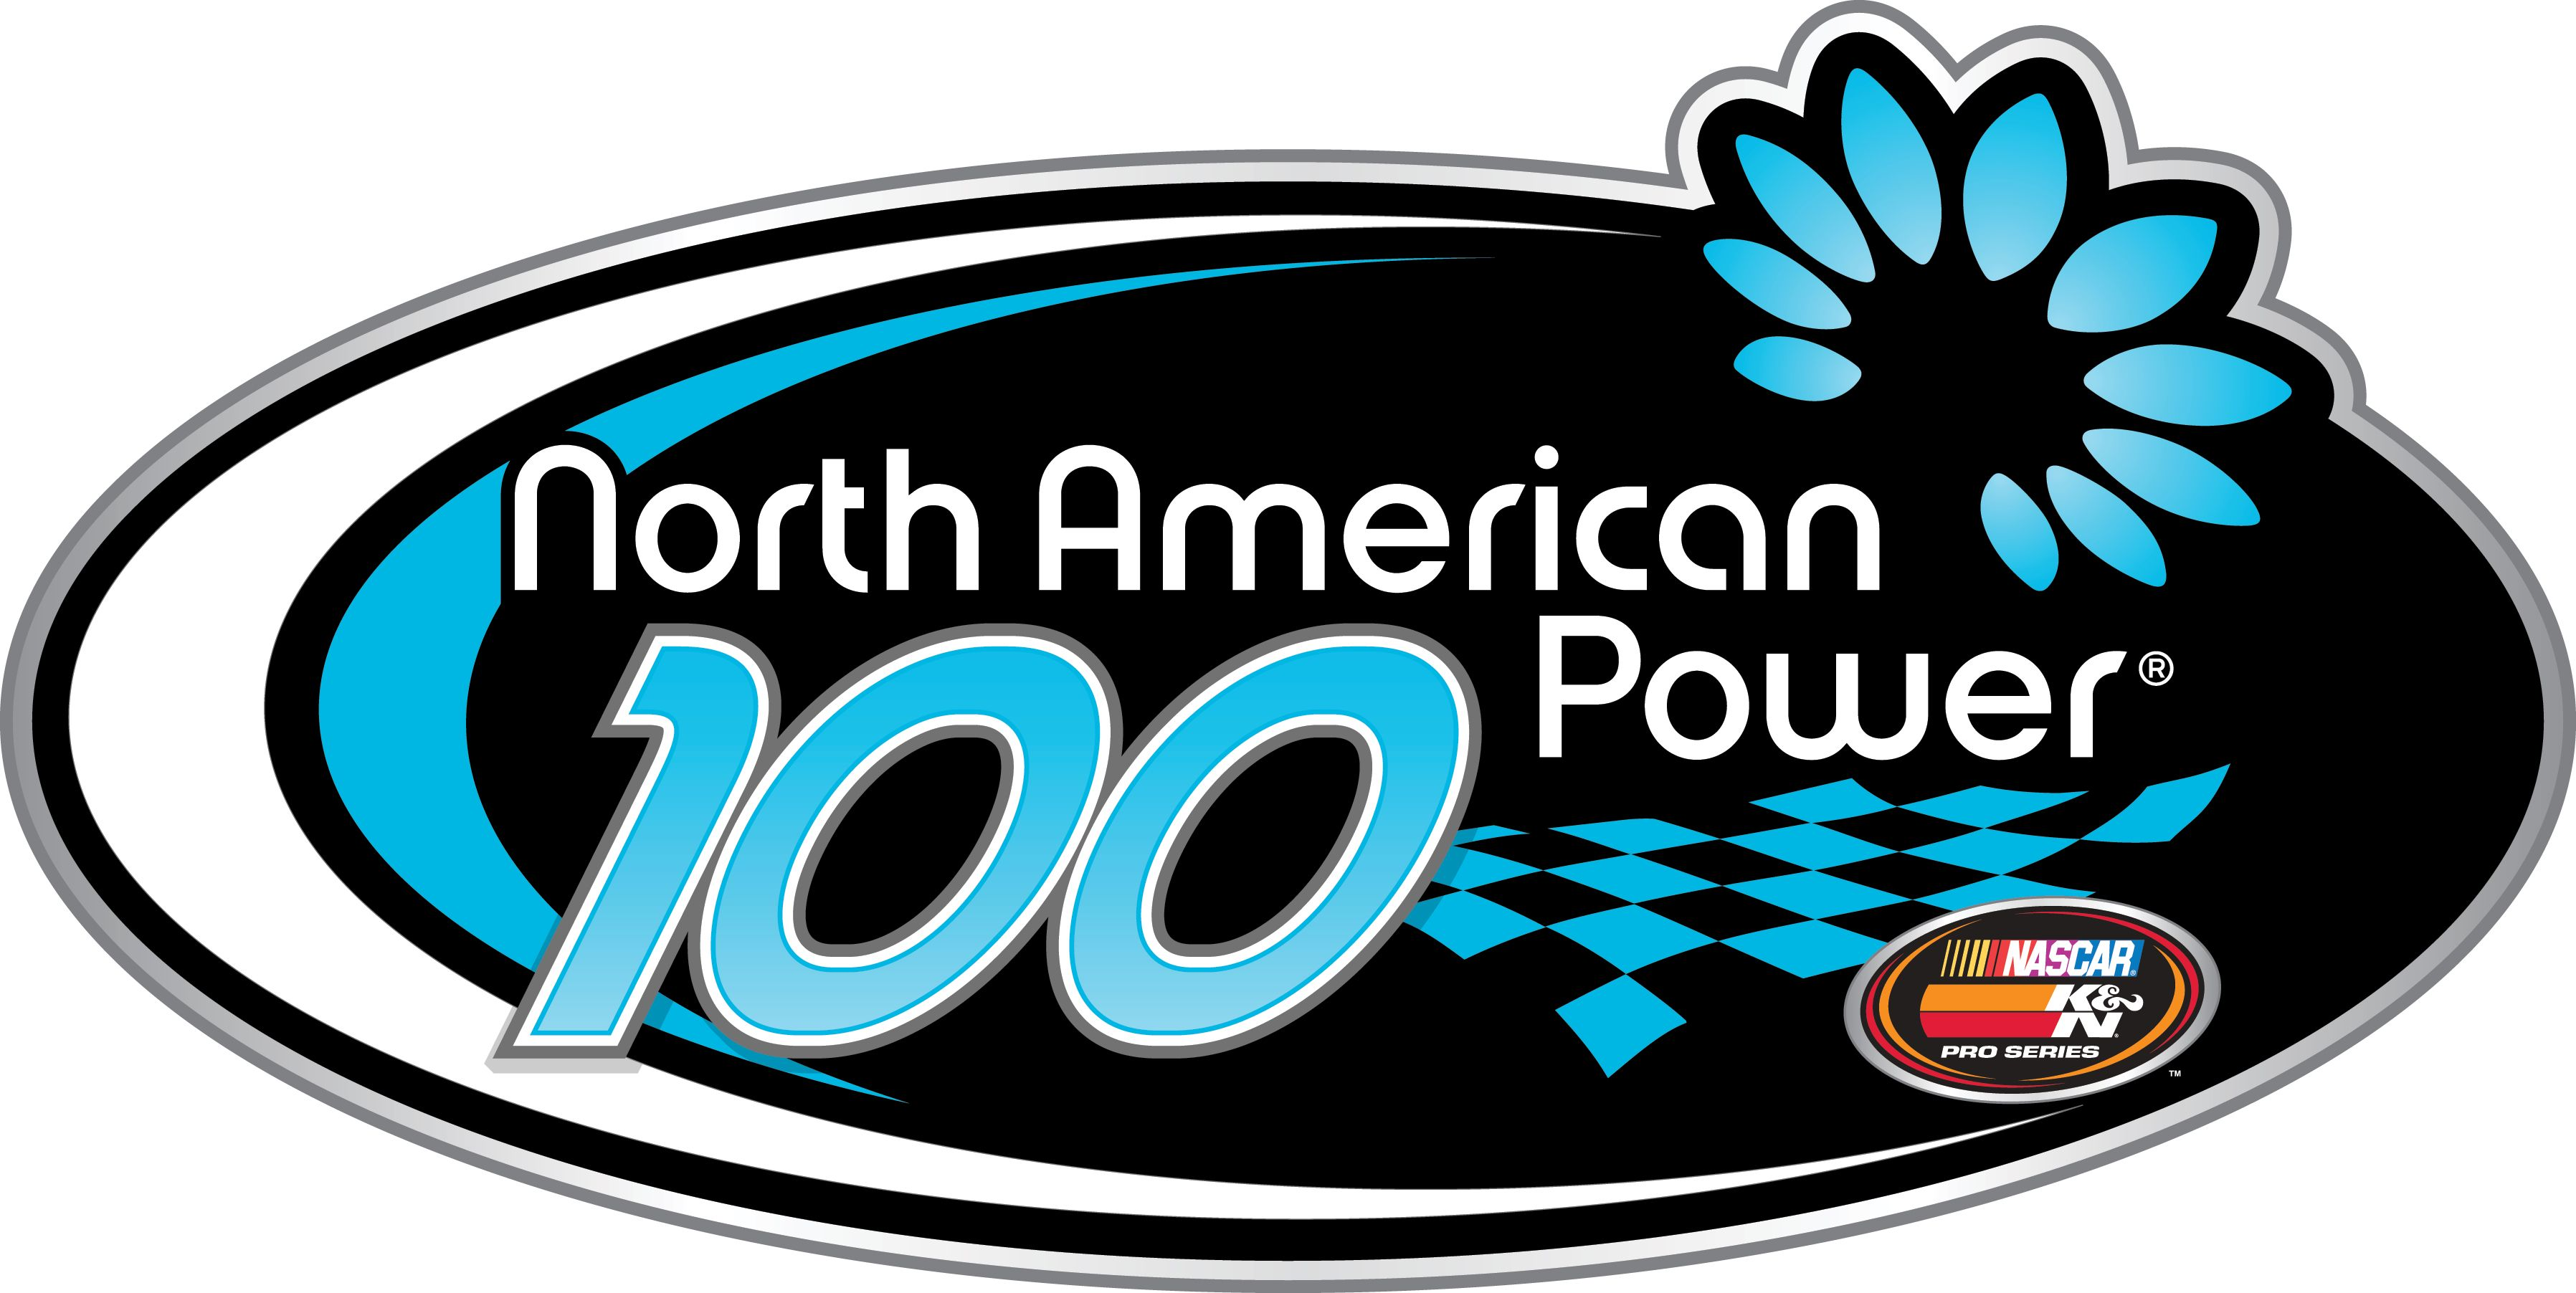 Watching the NASCAR K&N Pro Series East North American Power 100, from New Hampshire Motor Speedway in Loudon.